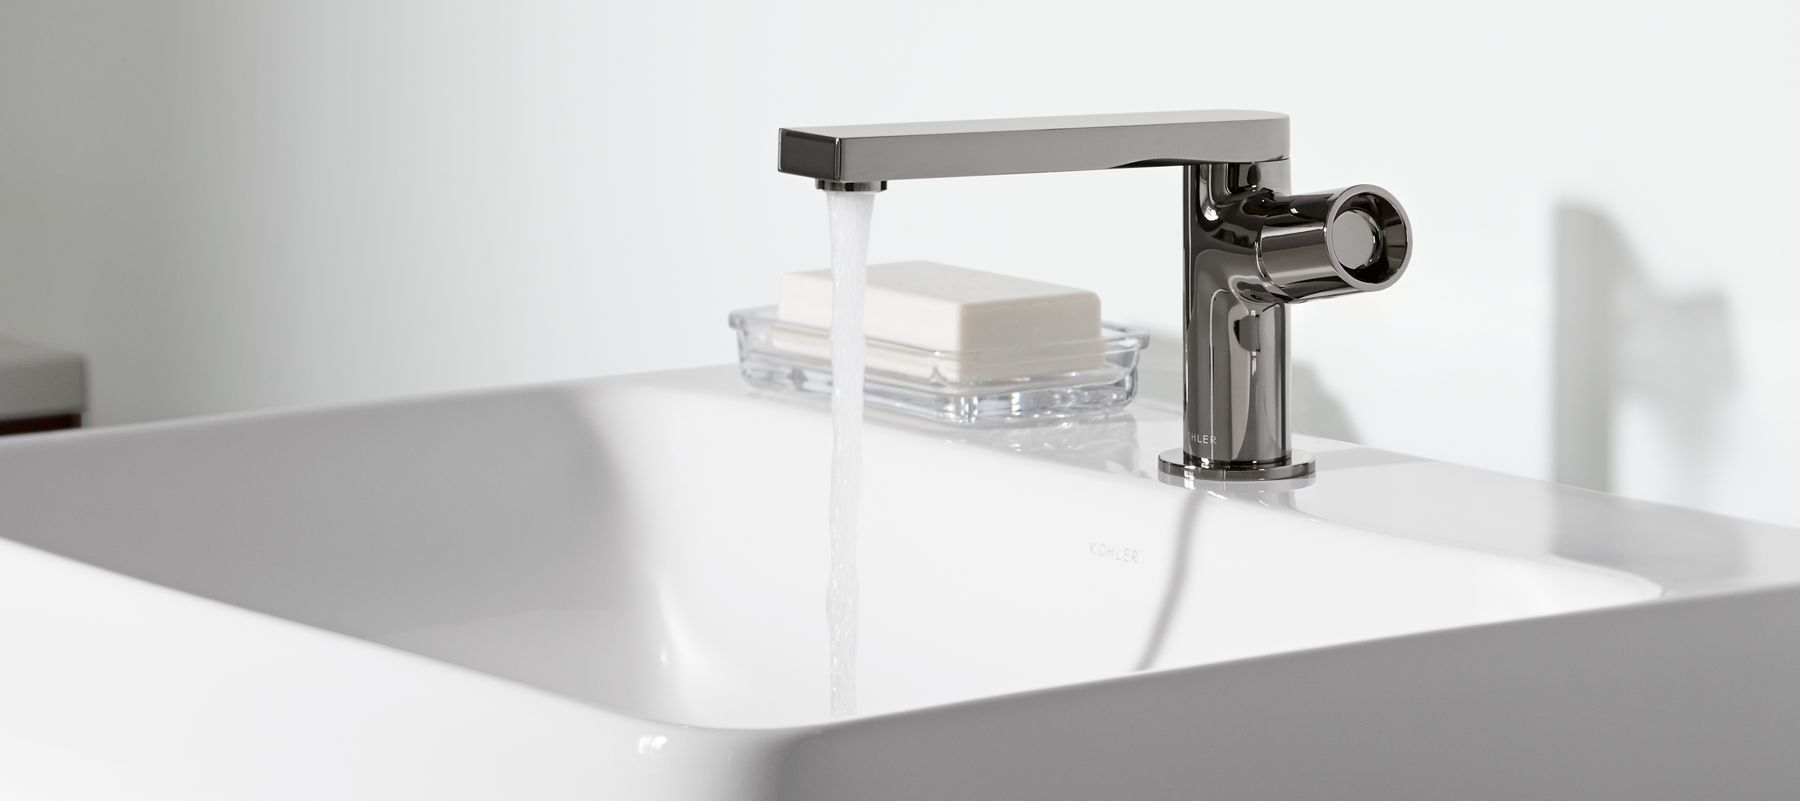 Bathroom Faucets New York City bathroom sink faucets | bathroom faucets | bathroom | kohler